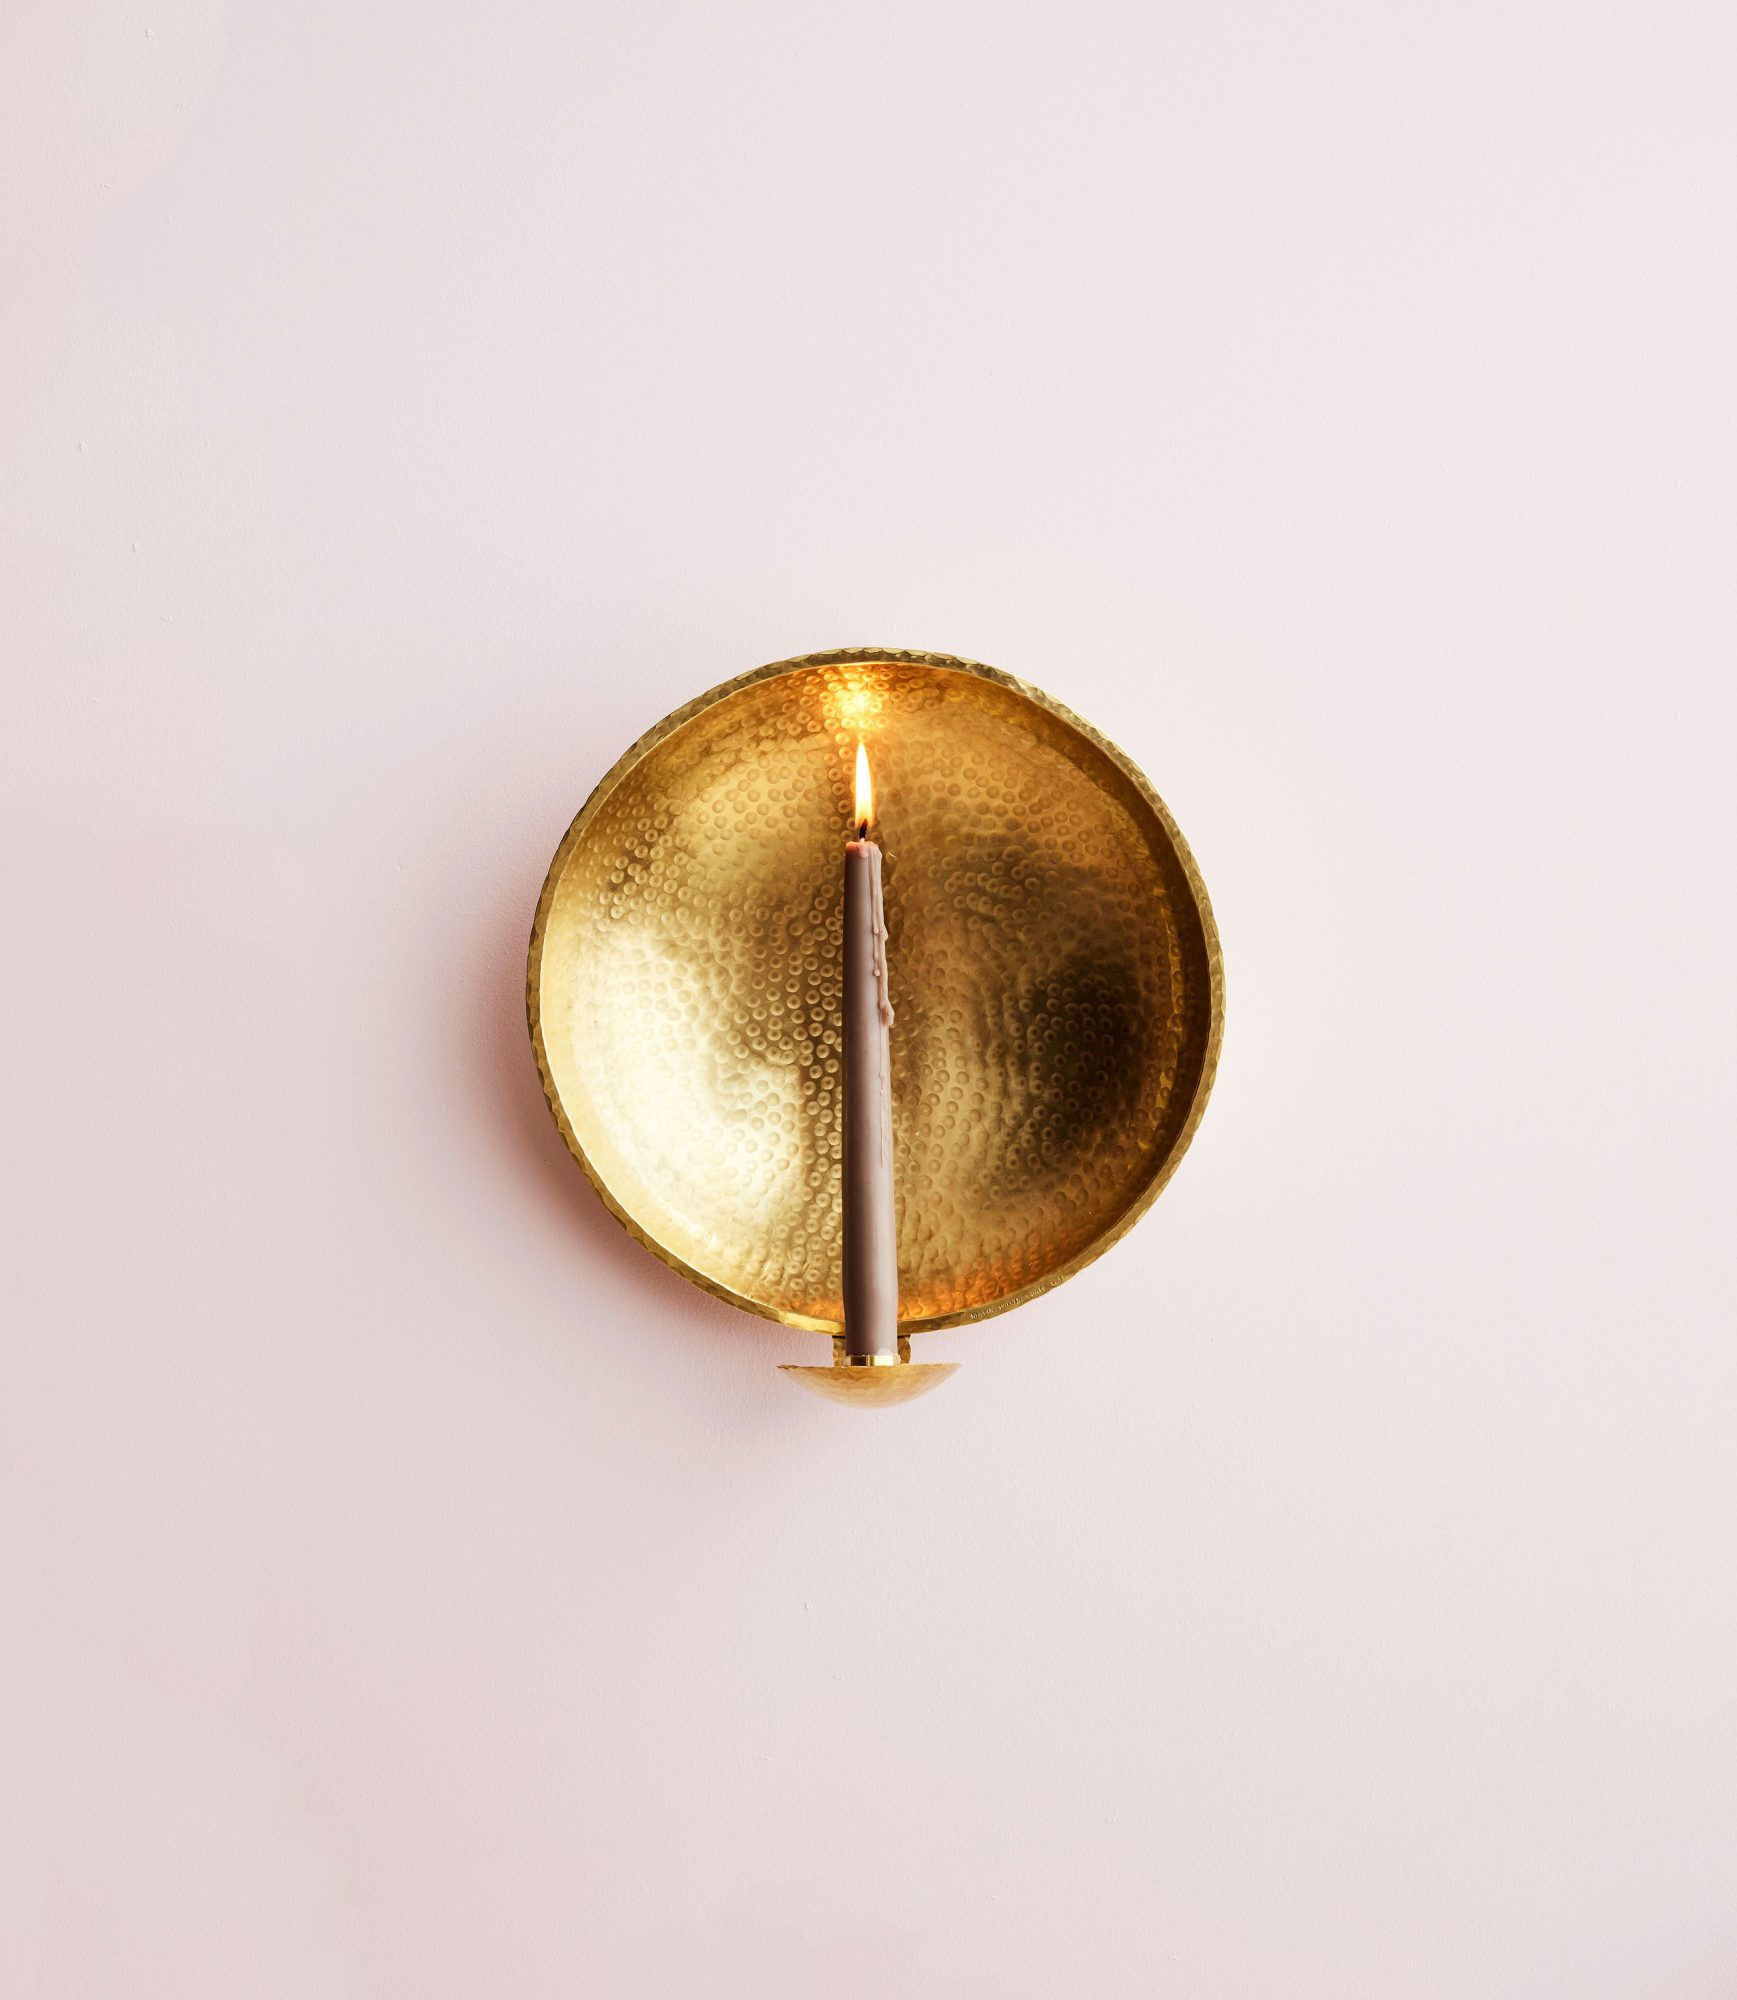 gold sconce with blush candle lit in the center against a blush wall